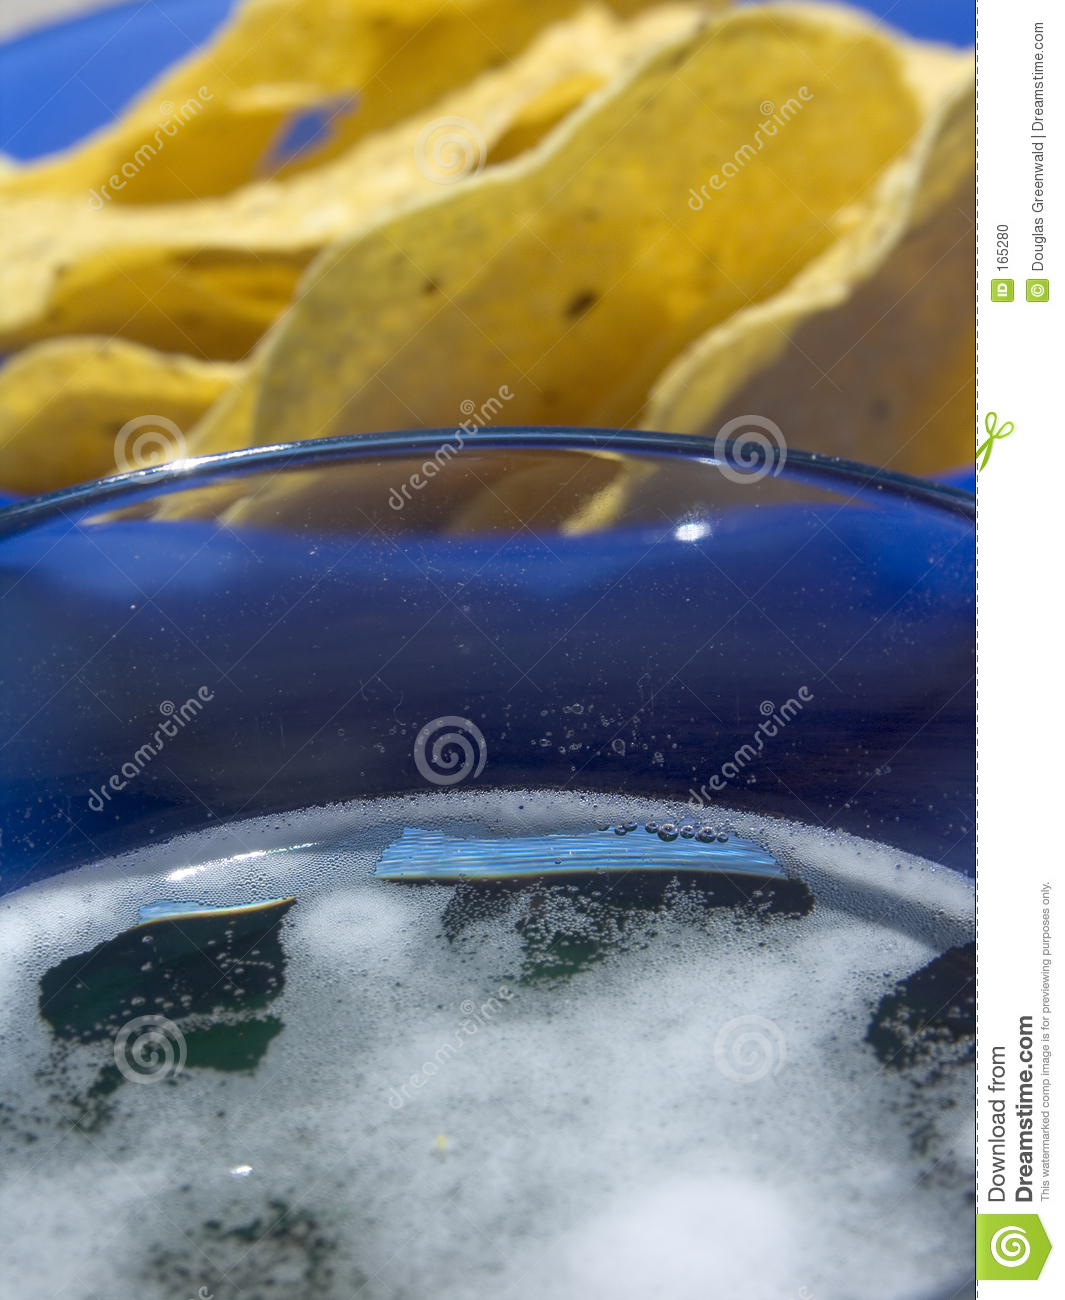 Corn chips and Beer